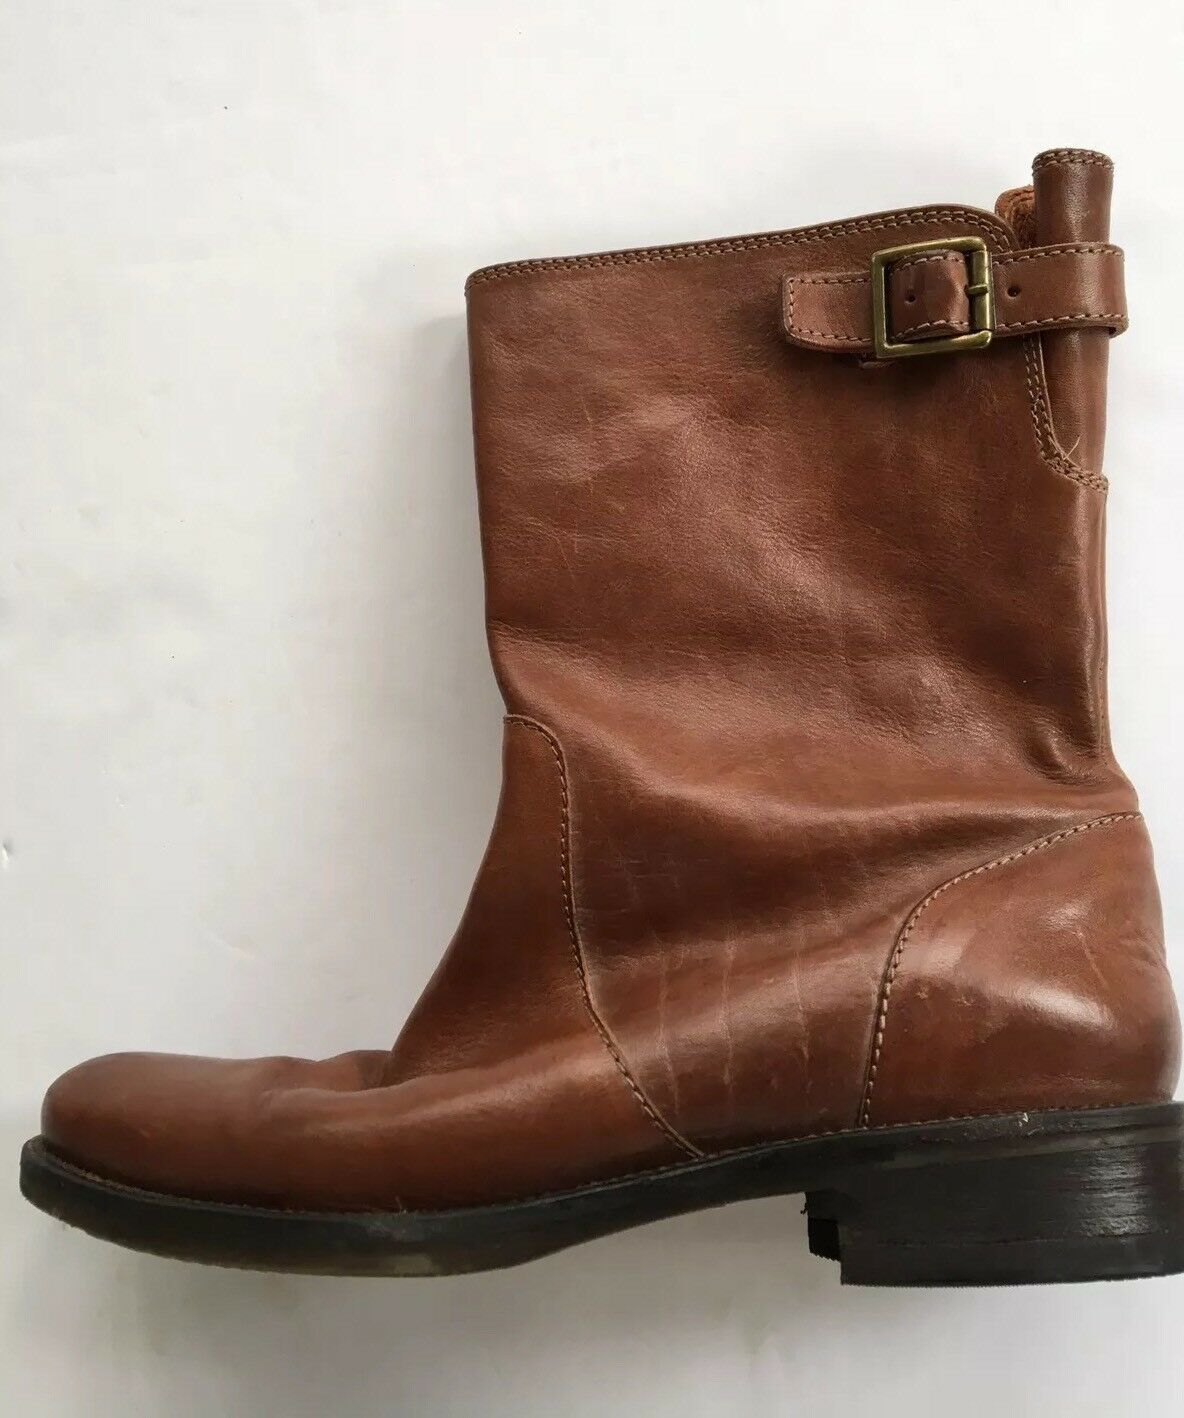 J Boots CREW Womens Short Ankle Riding Boots J Sepia Leather Size 9 cb5475